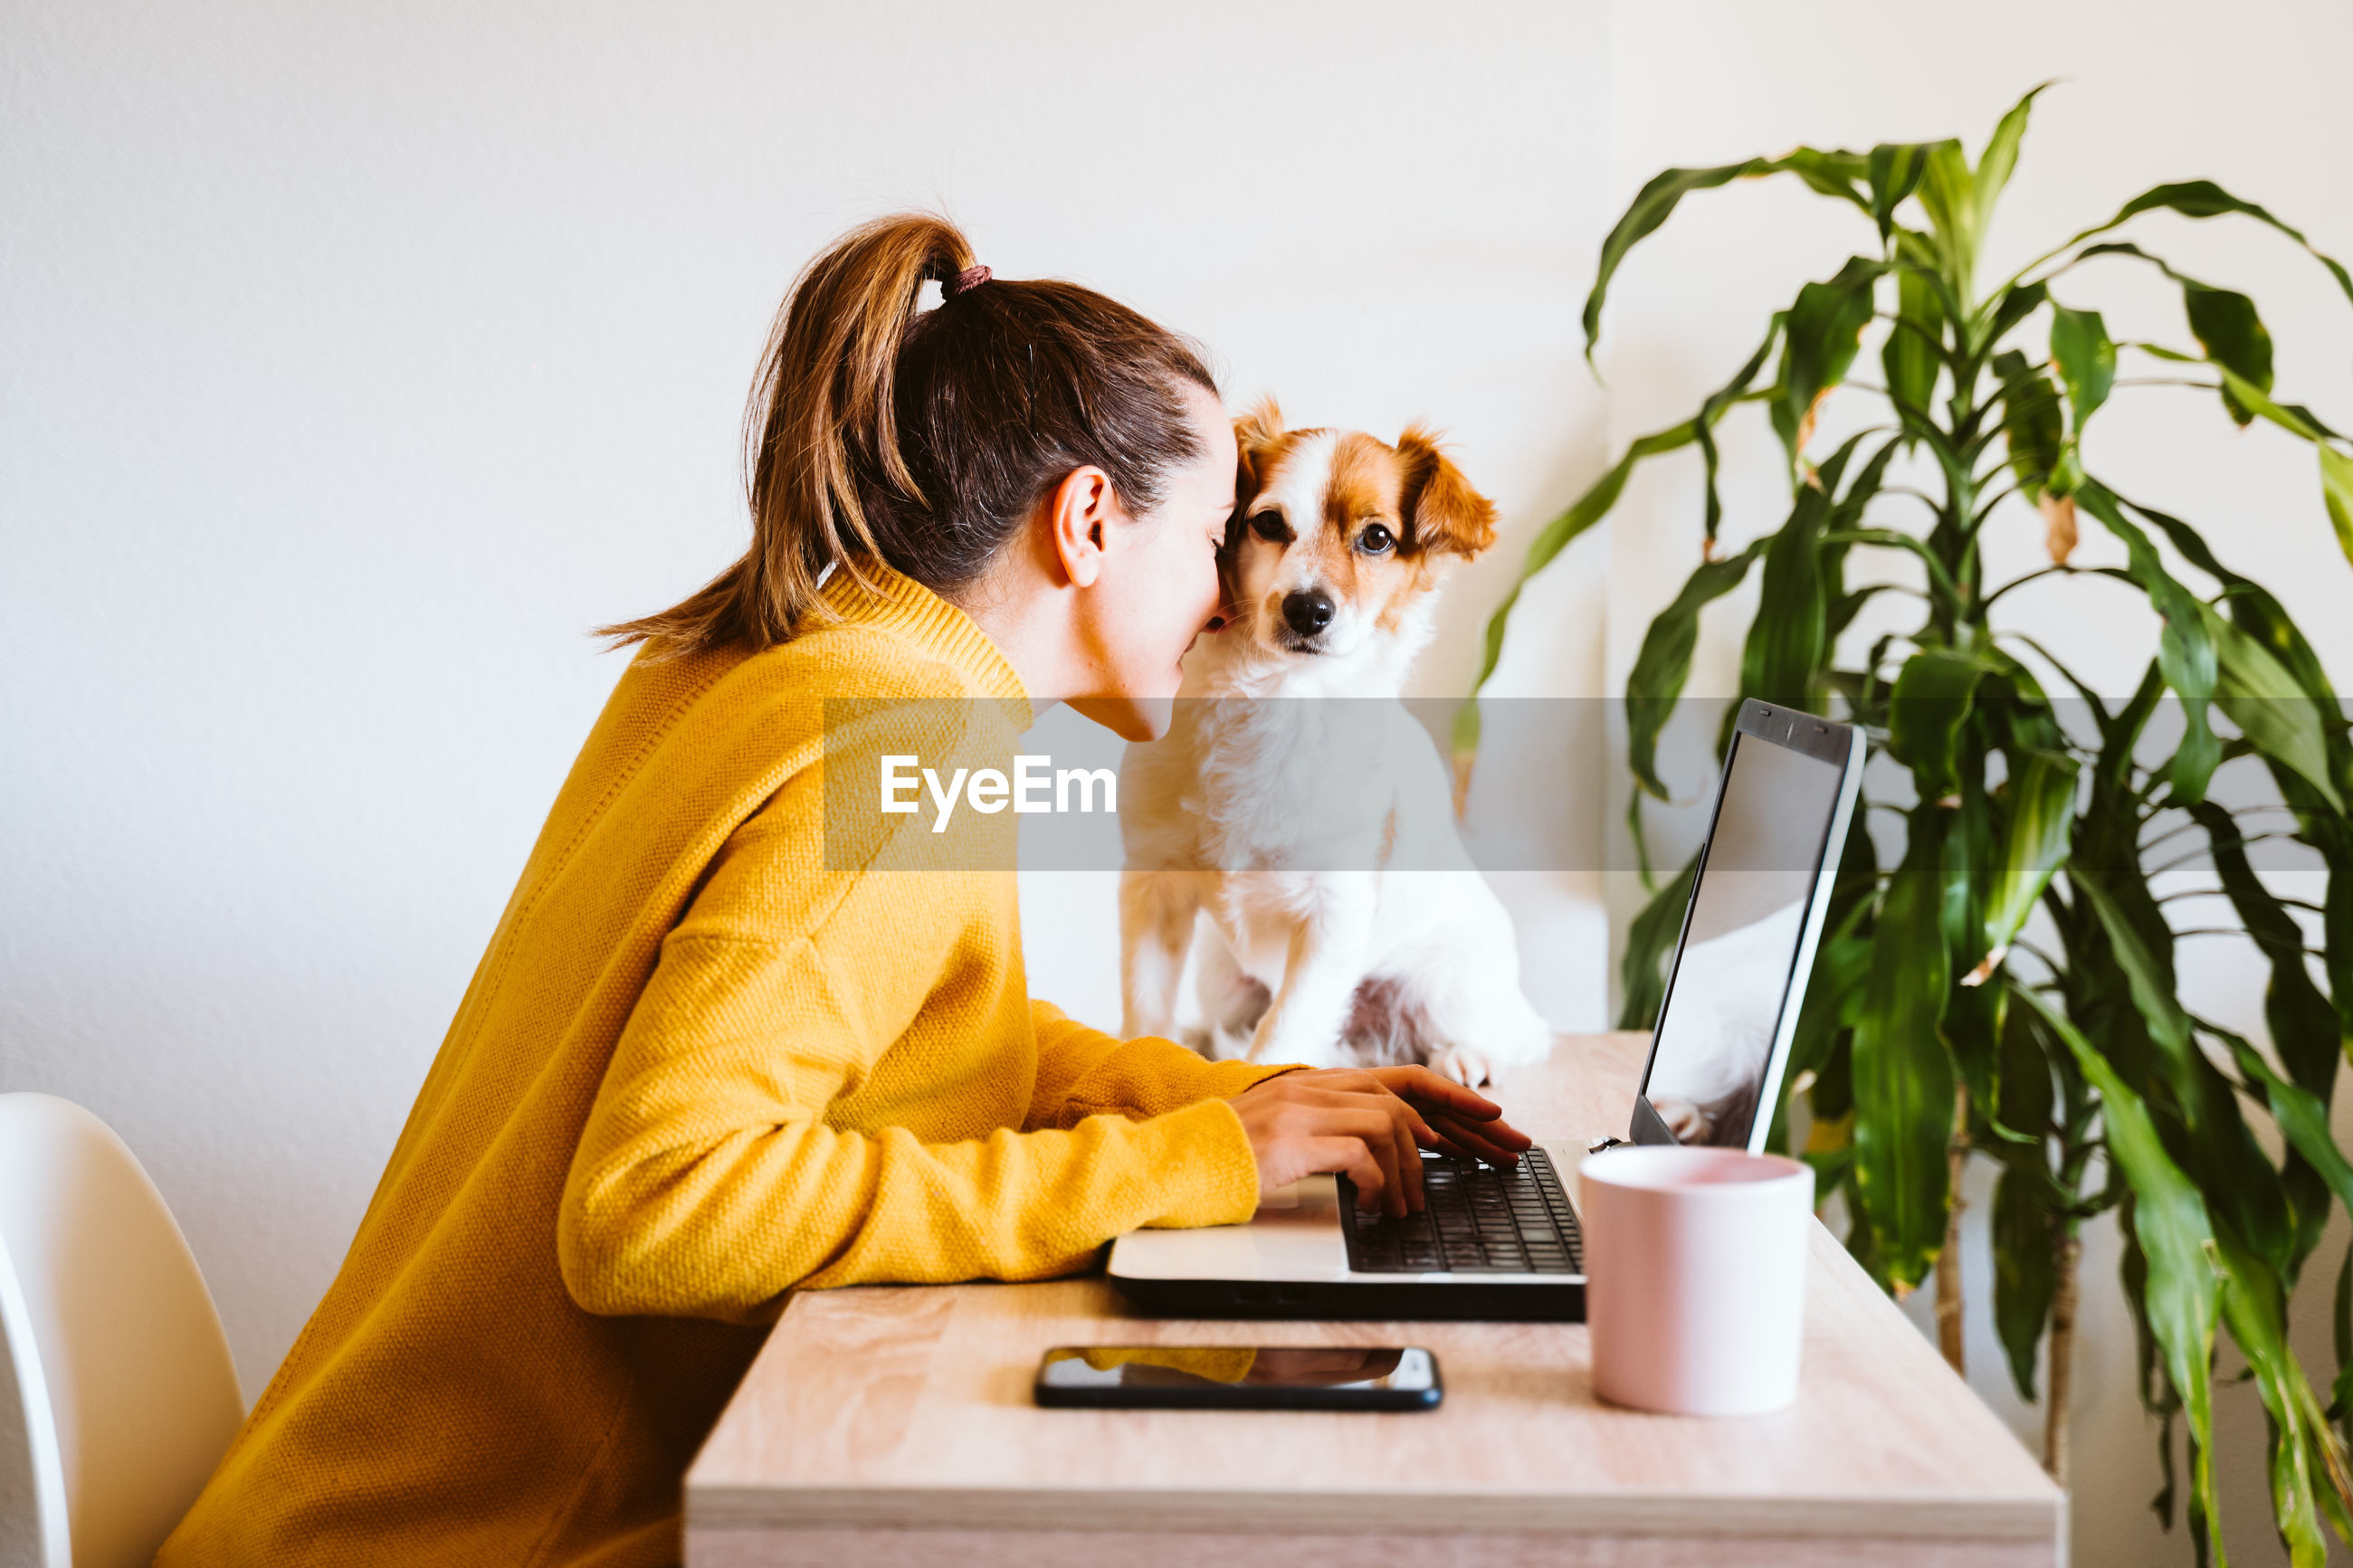 Side view of woman playing with dog while using laptop